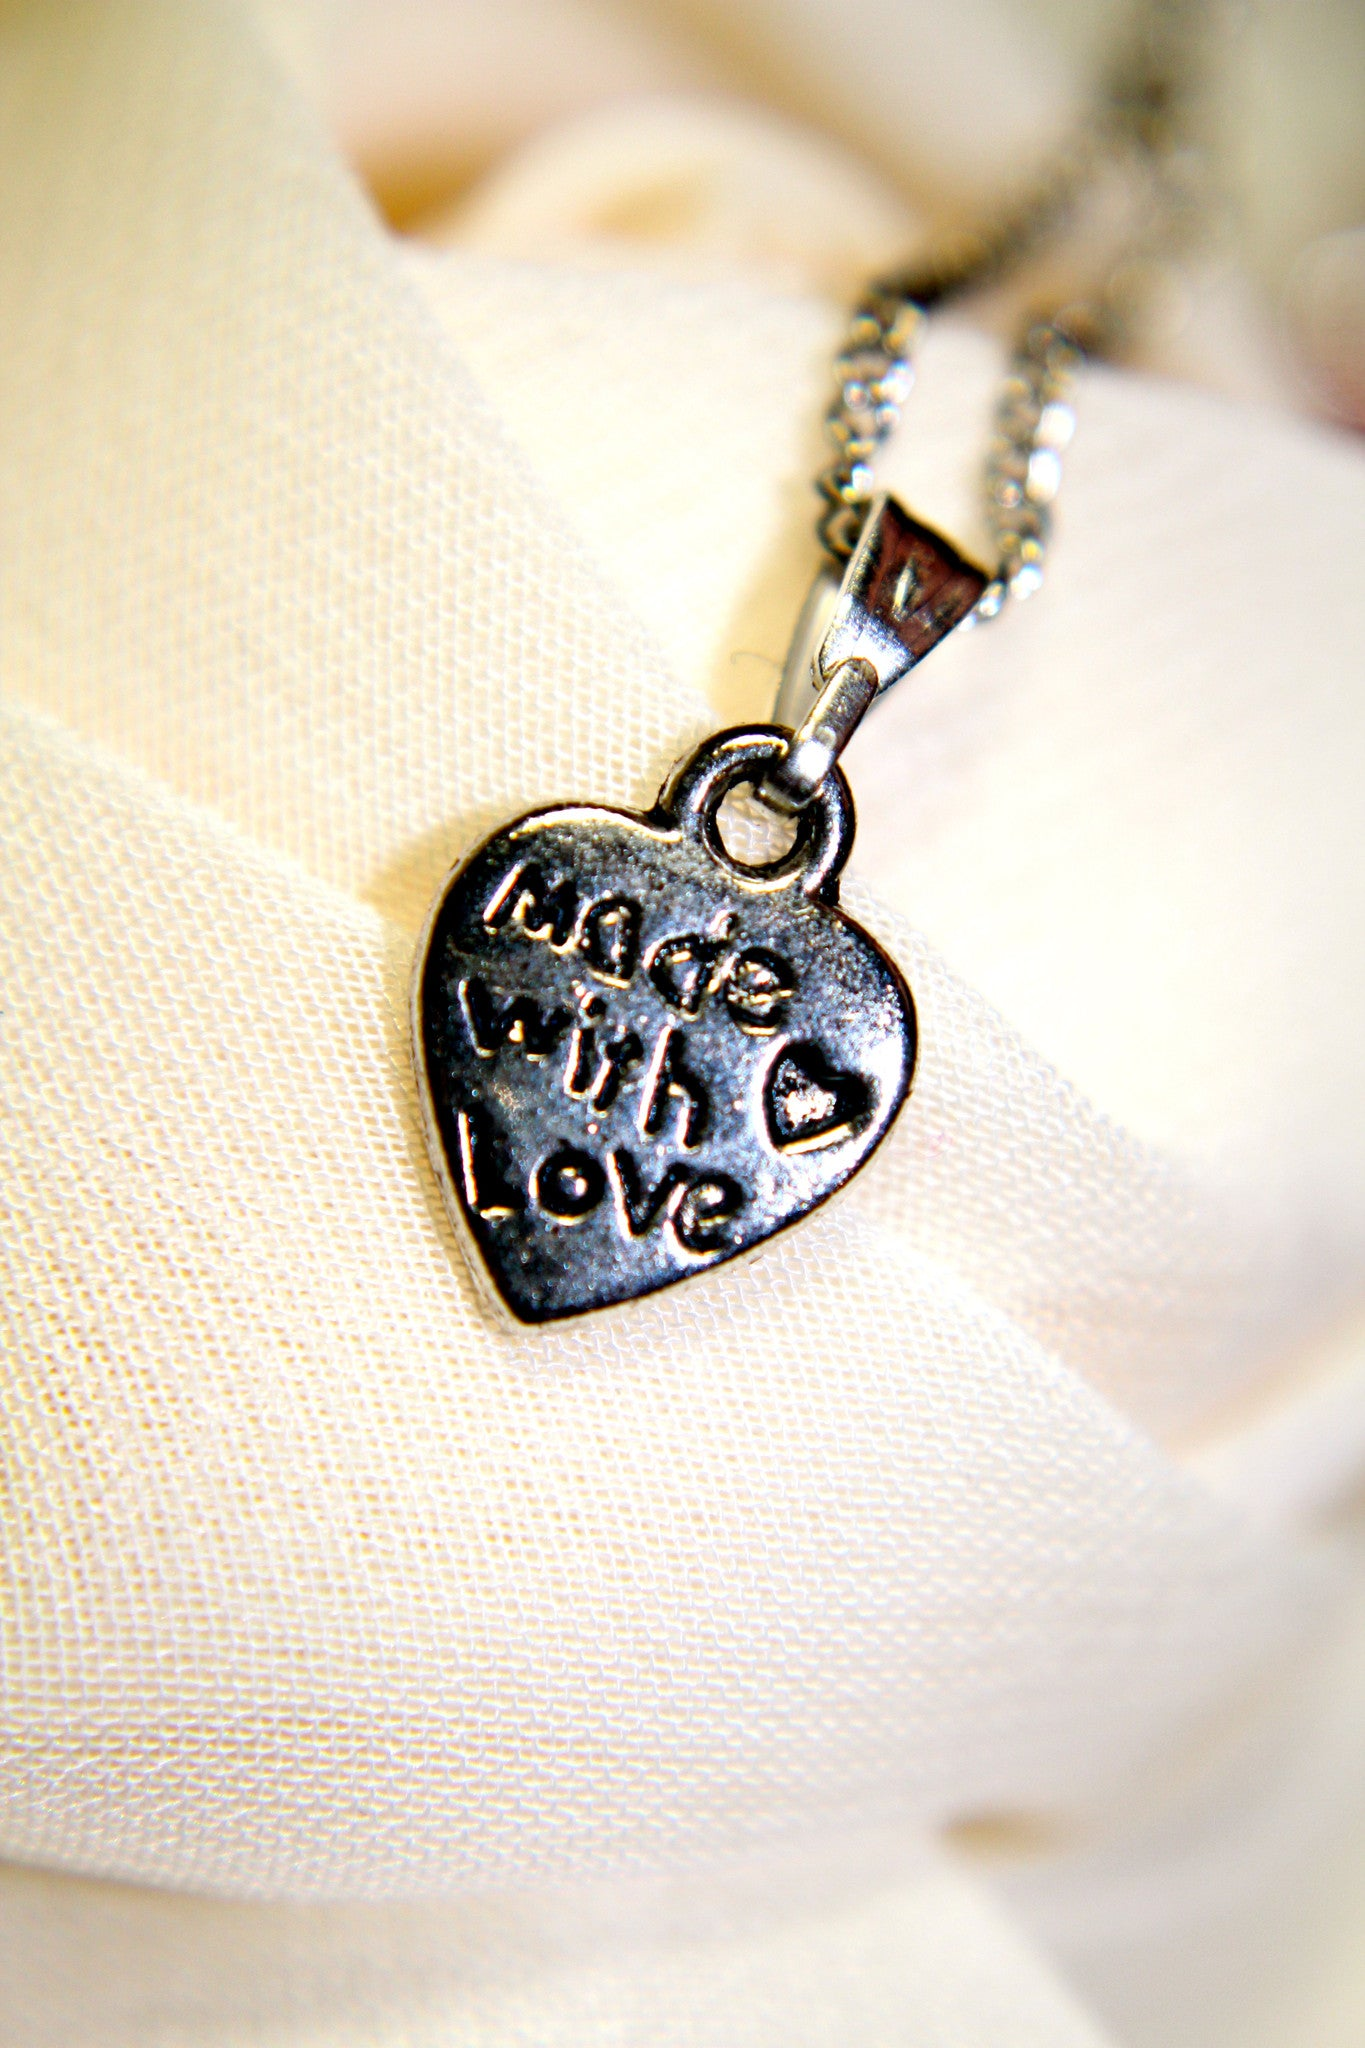 Made with Love Necklace